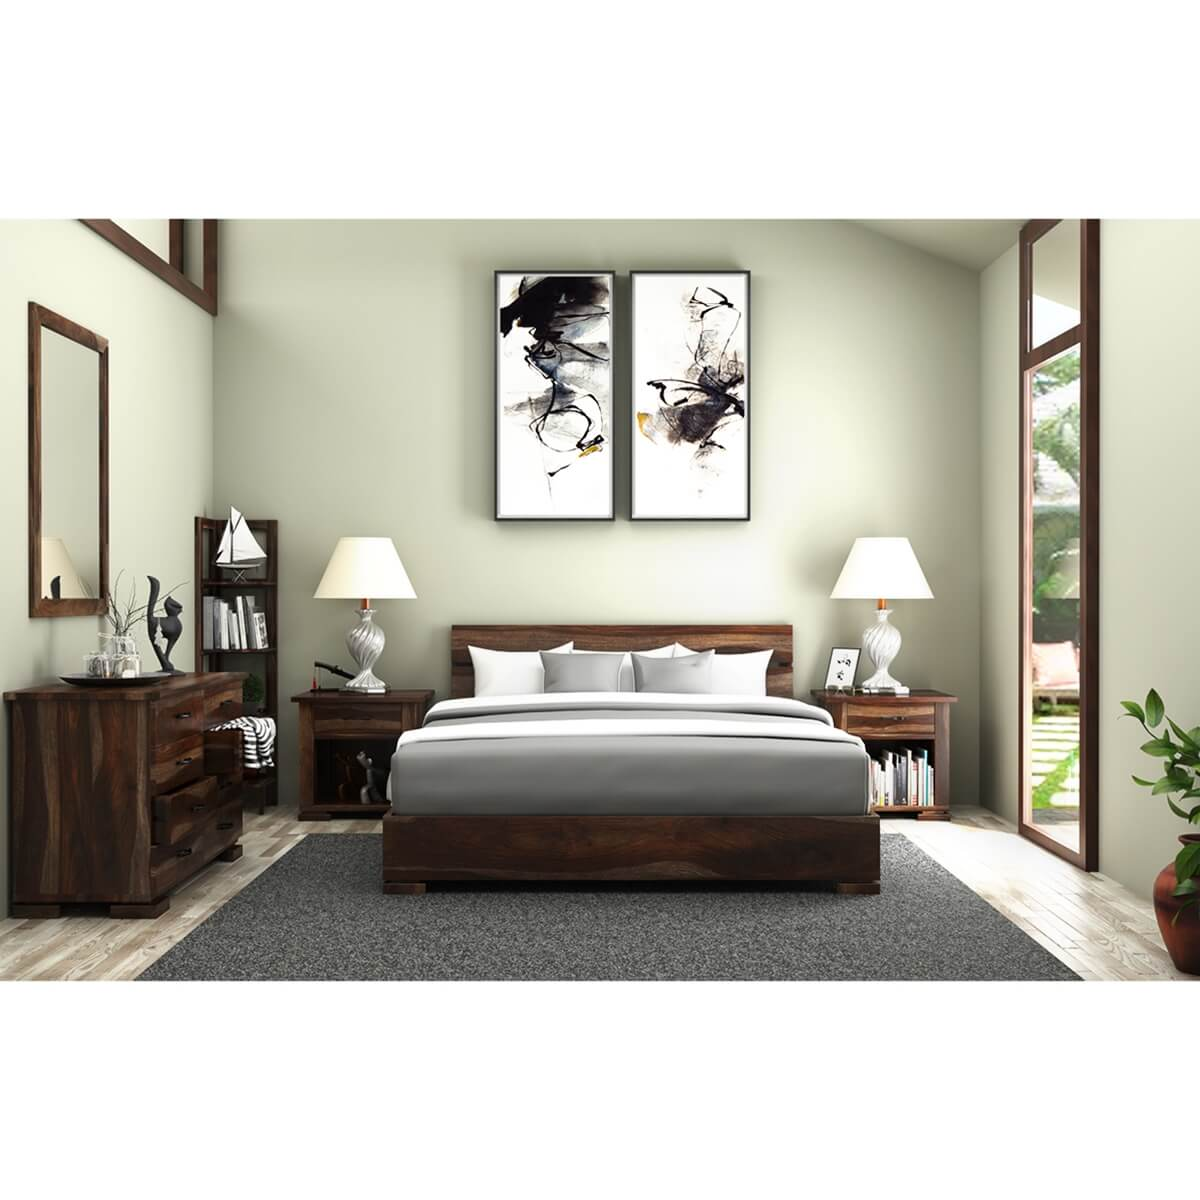 Athena 5 Piece Bedroom Set